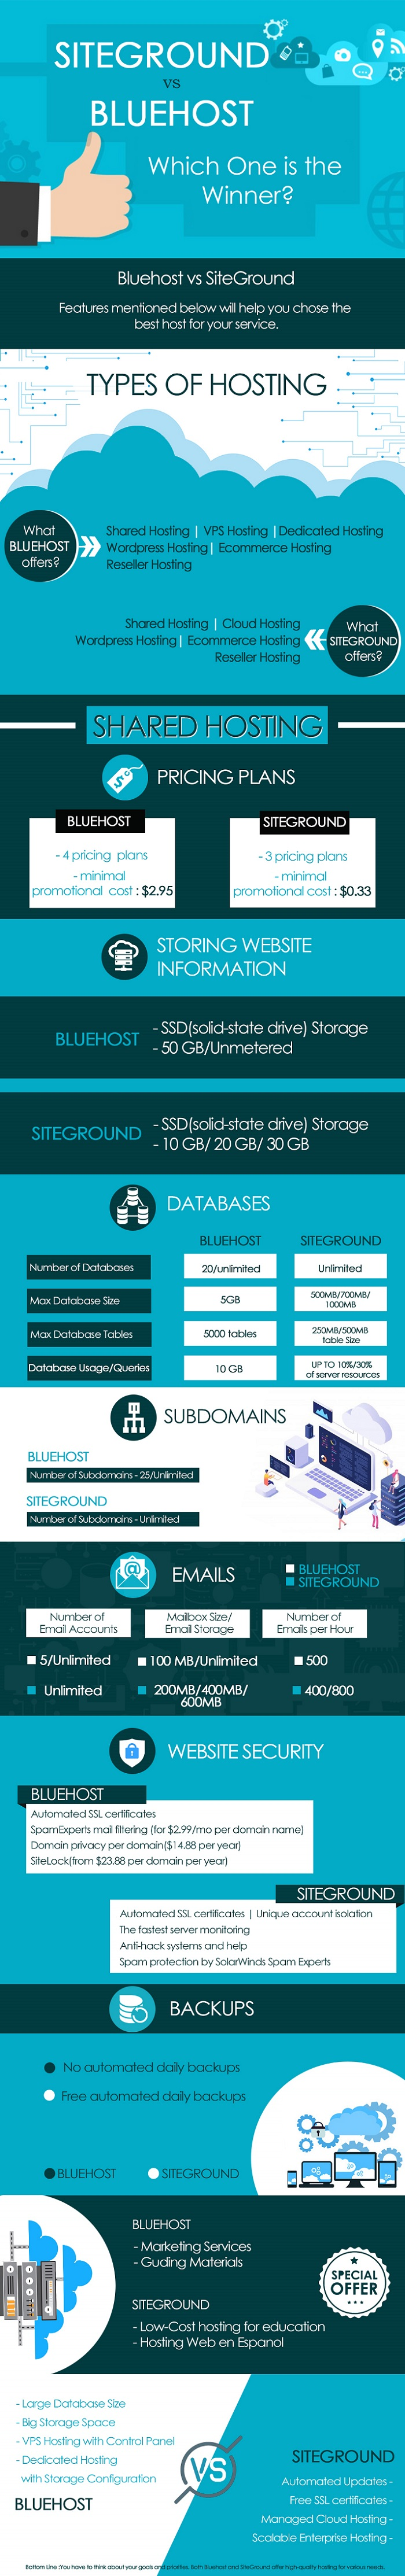 siteground vs bluehost infographic